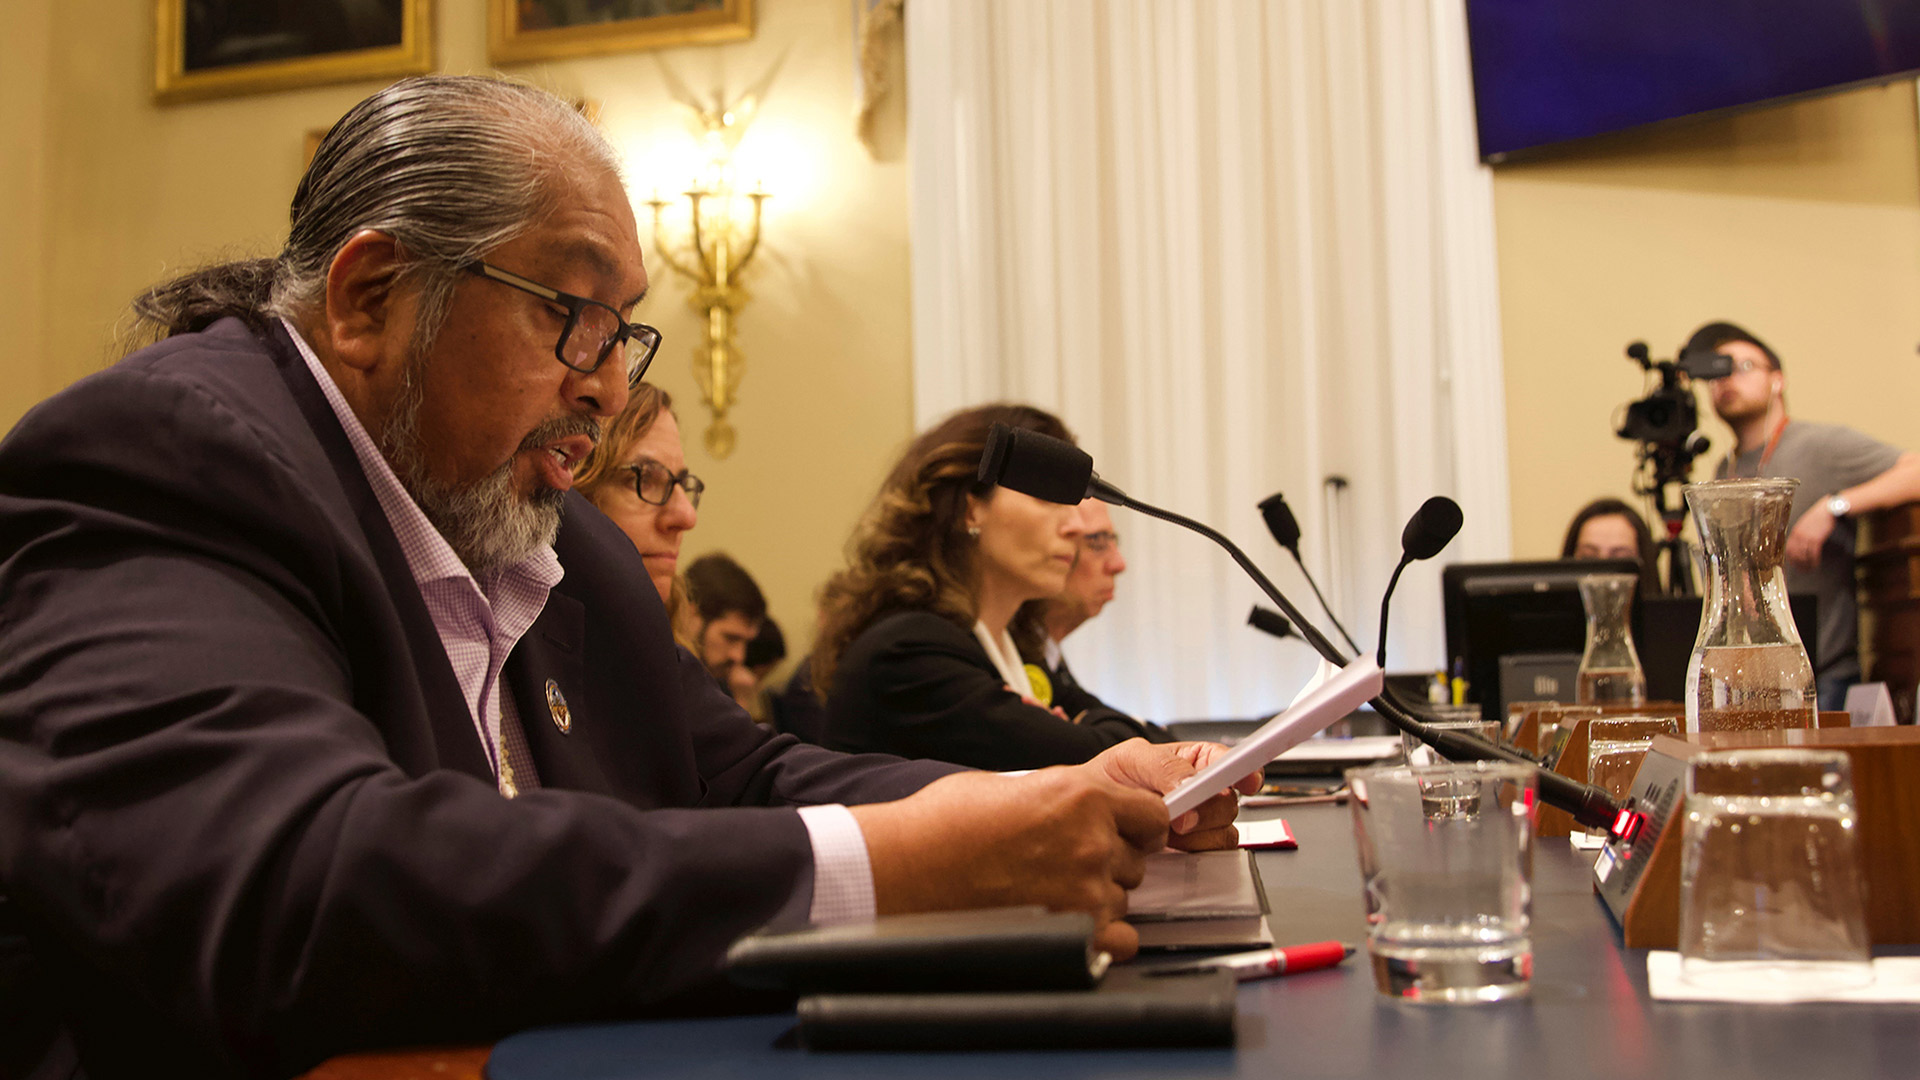 Tohono O'odham Chairman Ned Norris Jr. during congressional testimony in February. Norris is one of three tribal leaders, with Navajo Nation President Jonathan Nez and Gila River Indian Community Gov. Stephen Roe Lewis, on the slate of 11 diverse electors who will cast the state's Electoral College votes December 14, 2020, for President-elect Joe Biden.